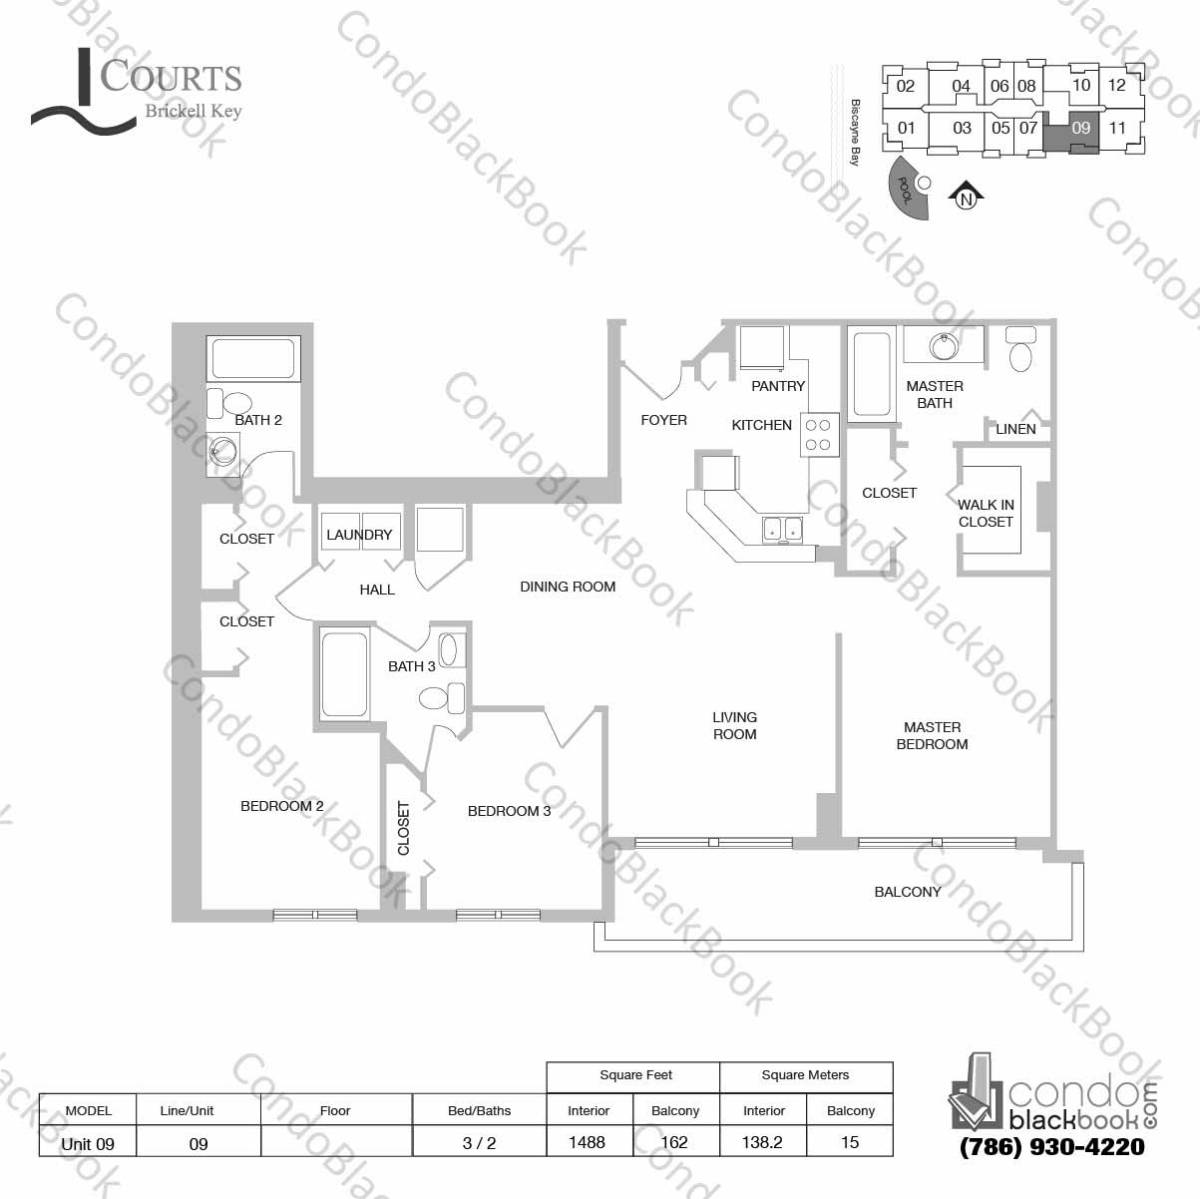 Floor plan for Courts Condo Brickell Key Brickell Key Miami, model Unit 09, line 09, 3 / 2 bedrooms, 1488 sq ft